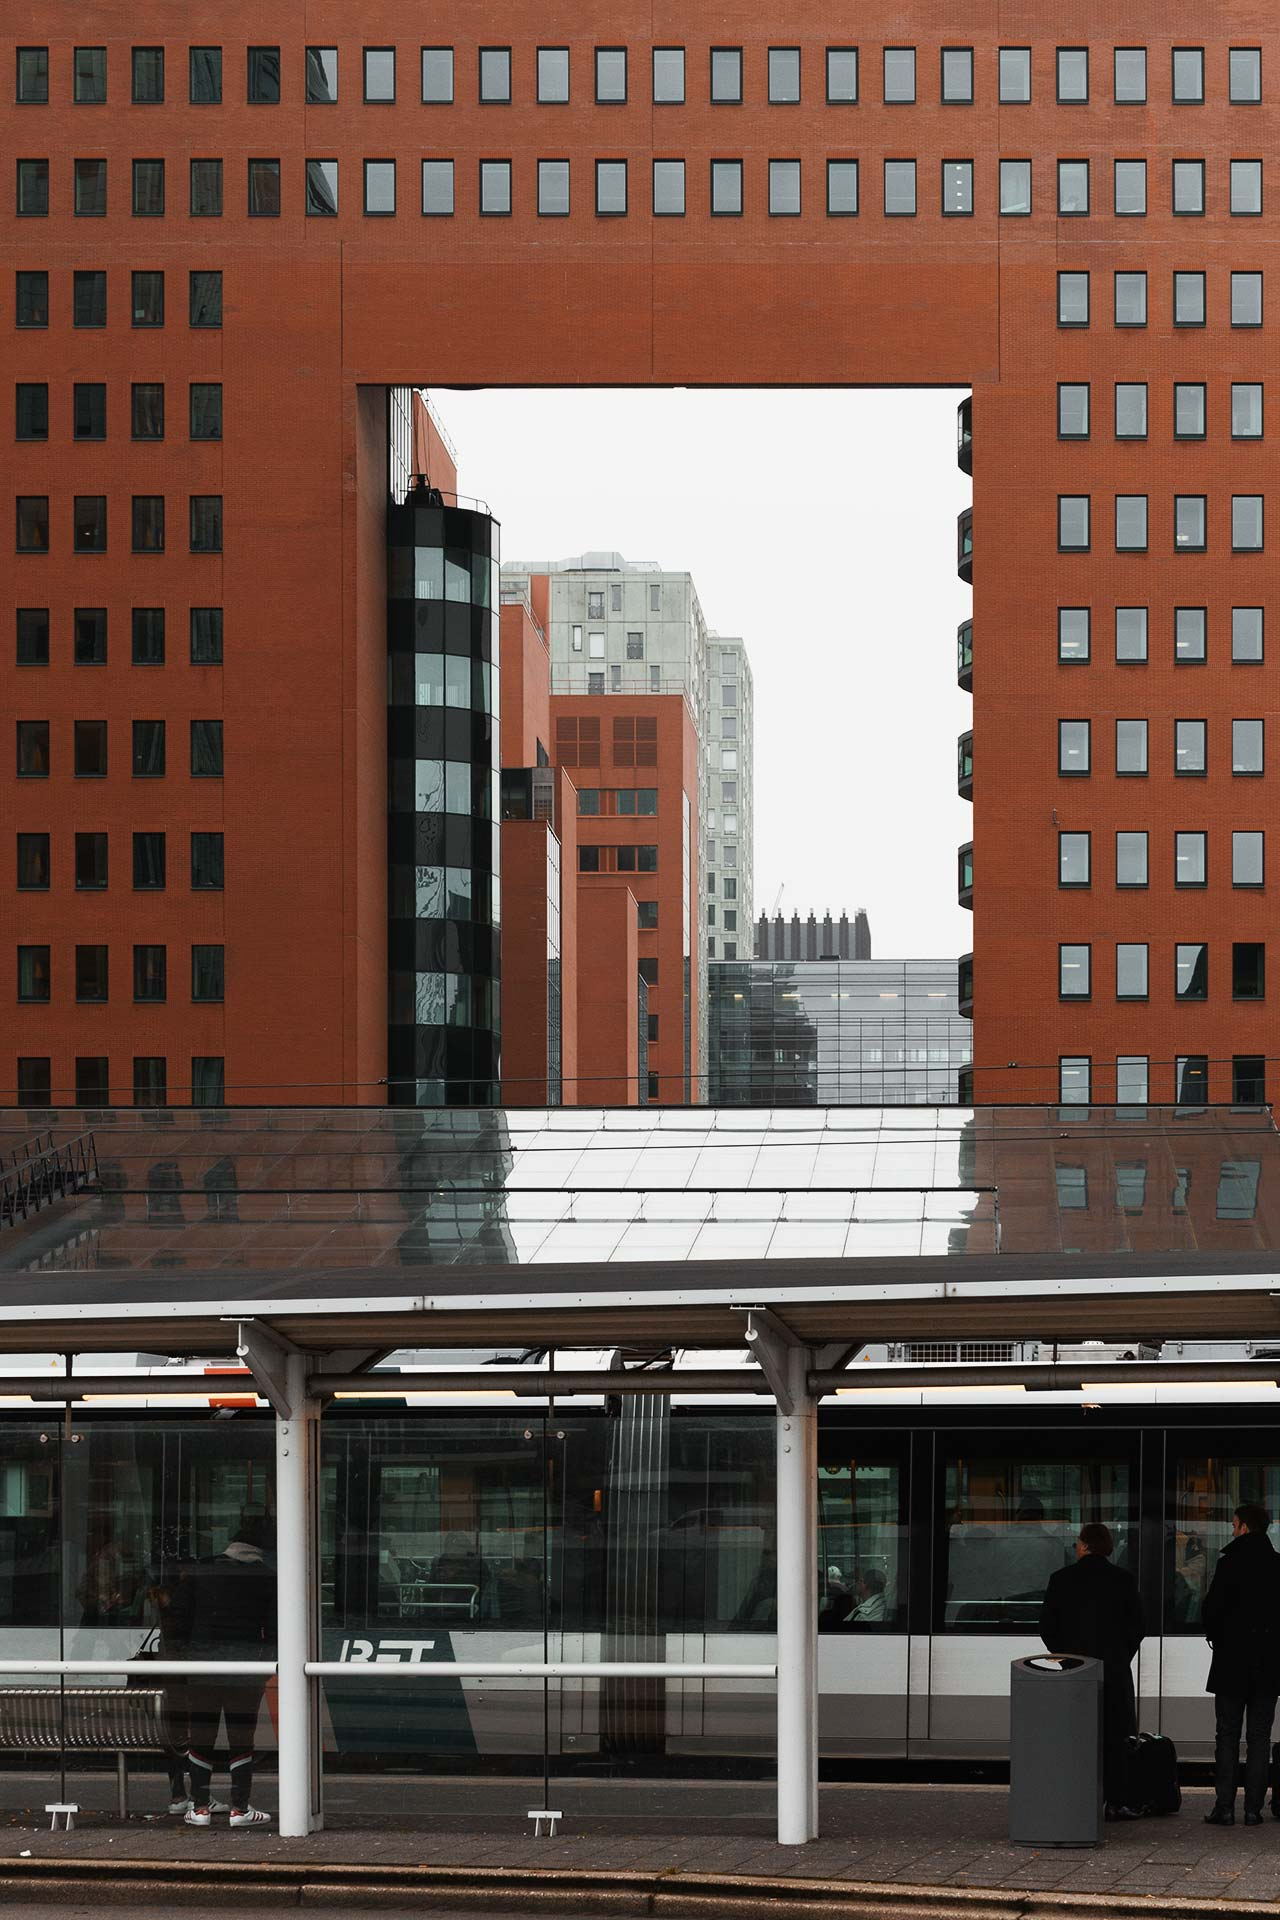 Squaring off your subject allows the frame to place another roll in the over all photography. - Rotterdam, The Netherlands 2017